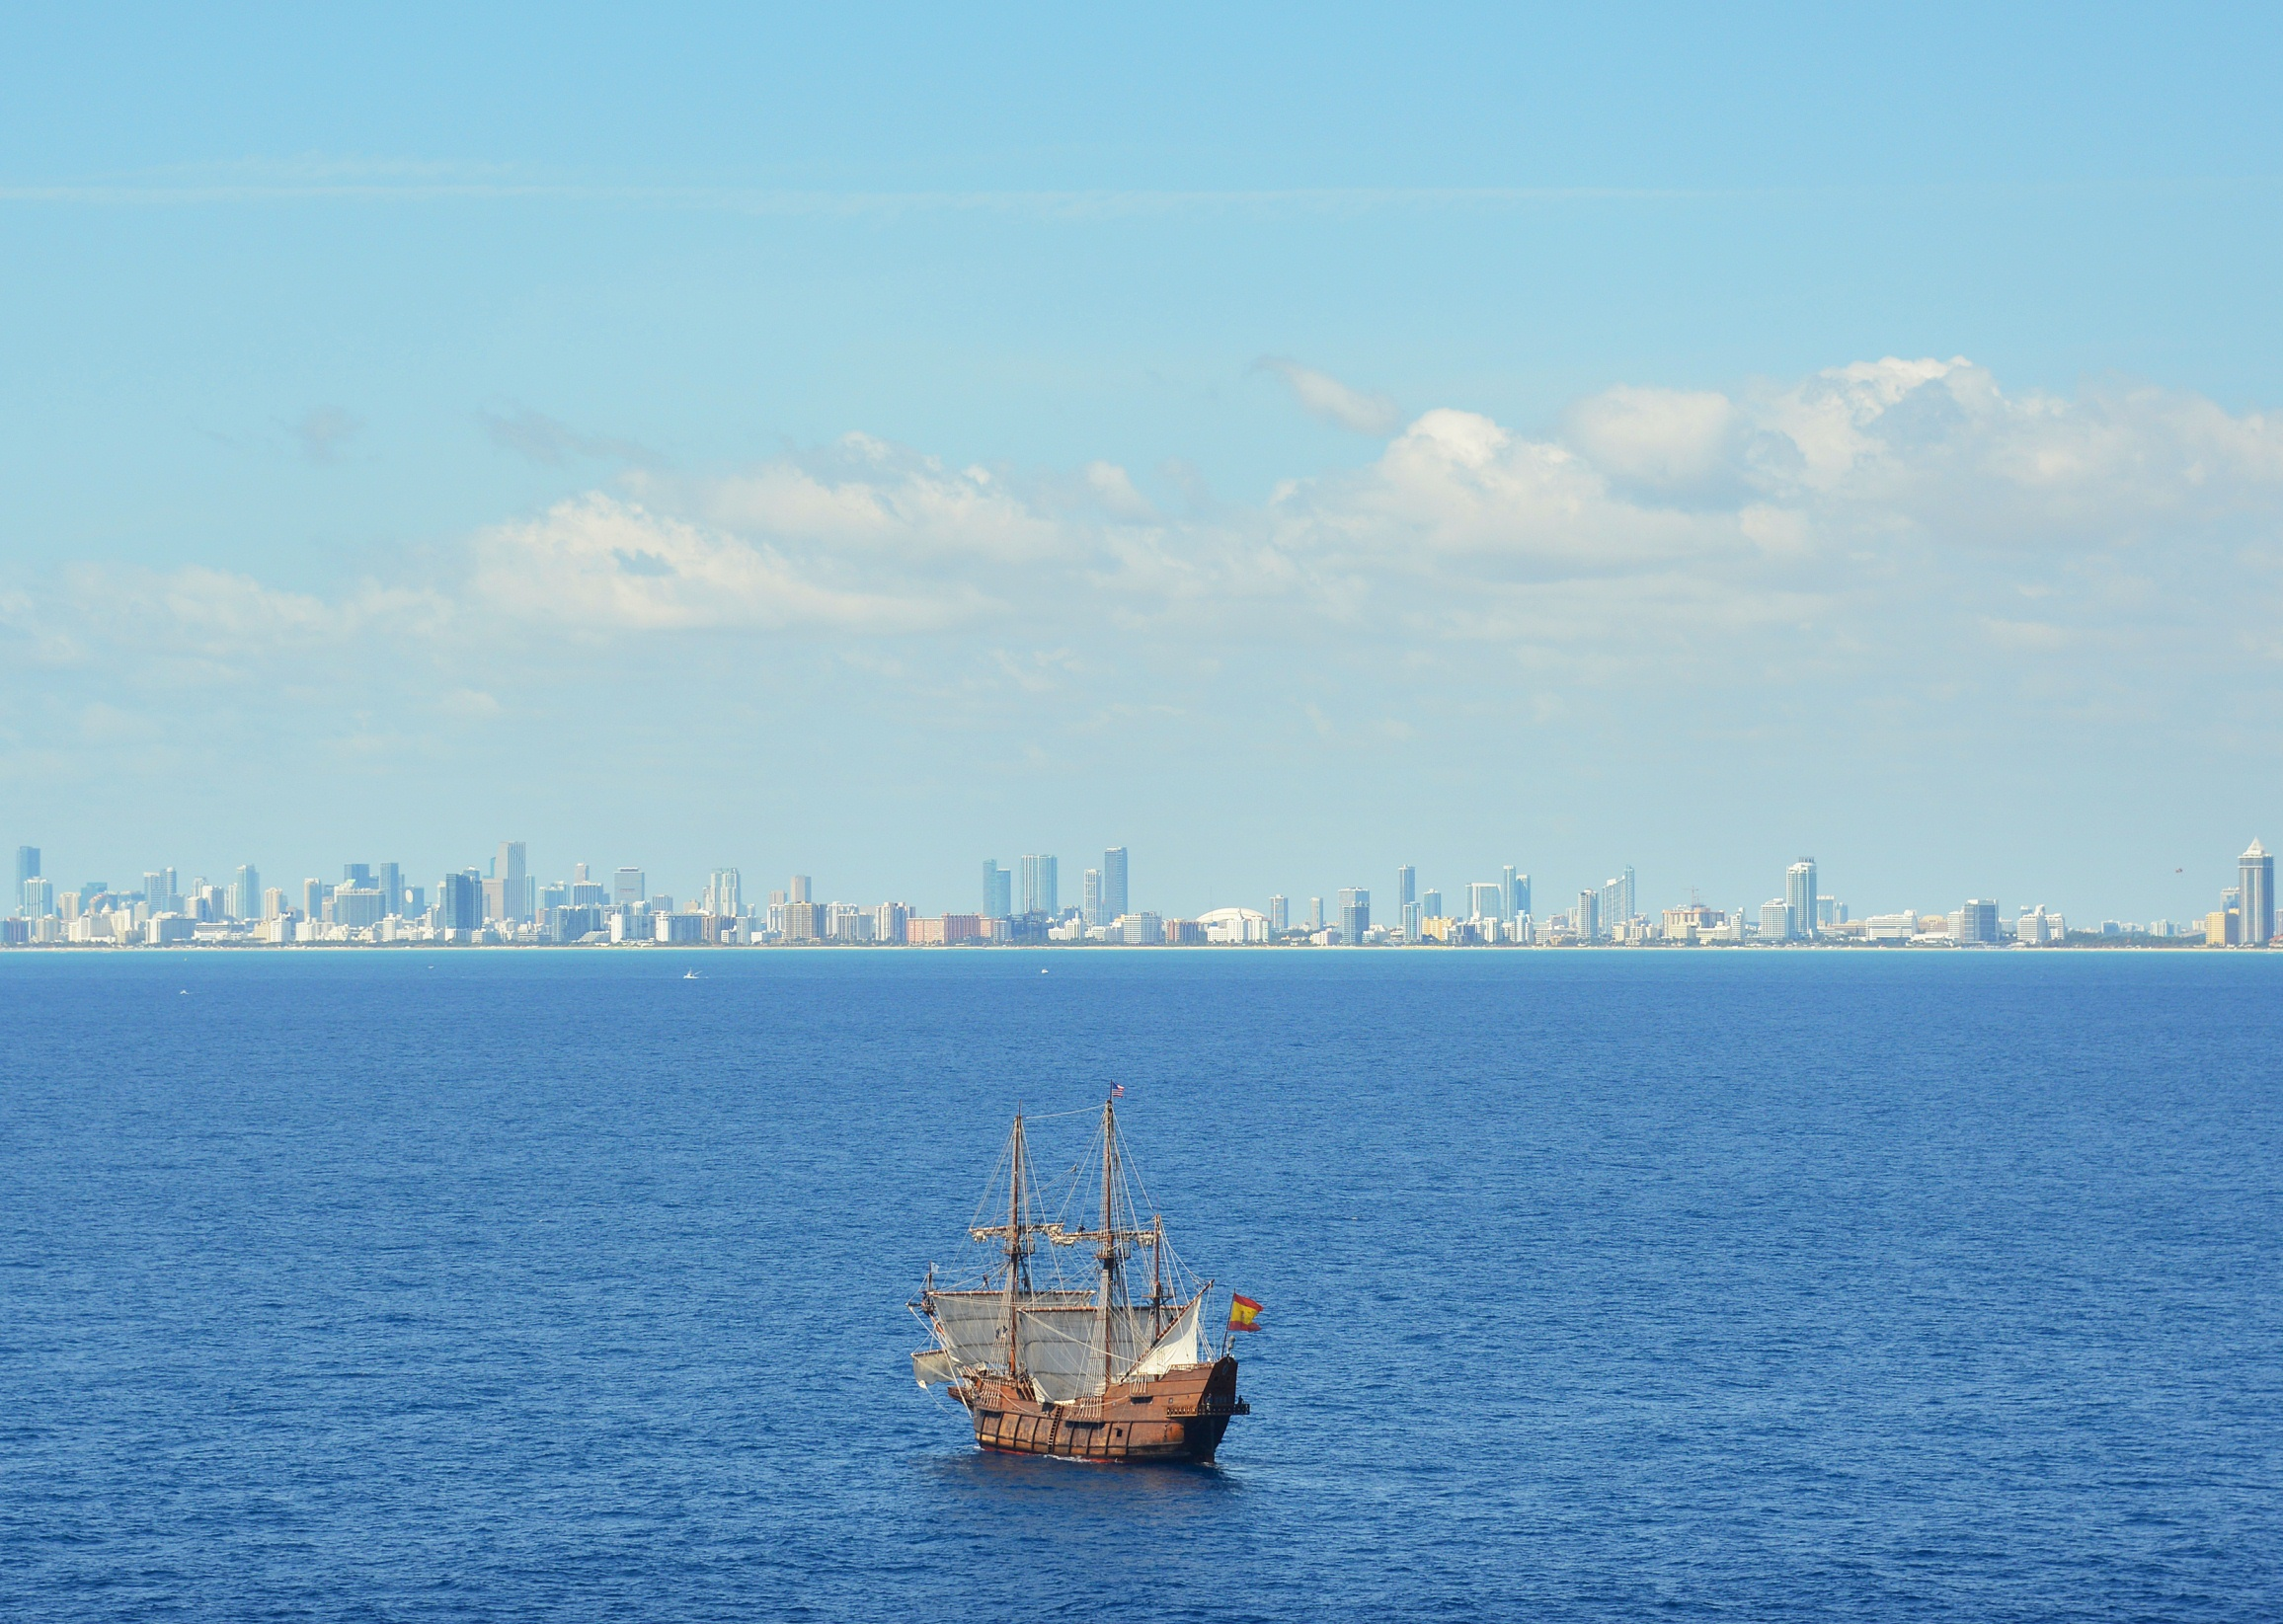 El Galeón arrives in Miami (April 8) from Puerto Rico. The Viva Florida 500 Voyage originated in Spain. The ship will visit four Florida ports. Credit Peter W. Cross, VISIT FLORIDA.